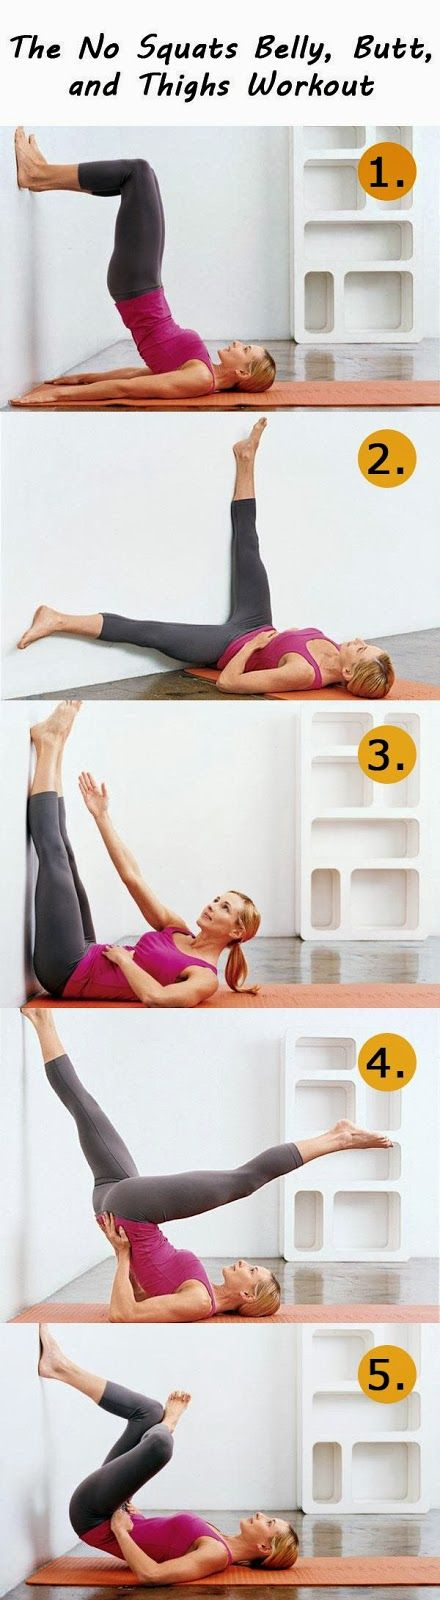 losing weight and fitness : The No Squats Belly, Butt, and Thighs Workout